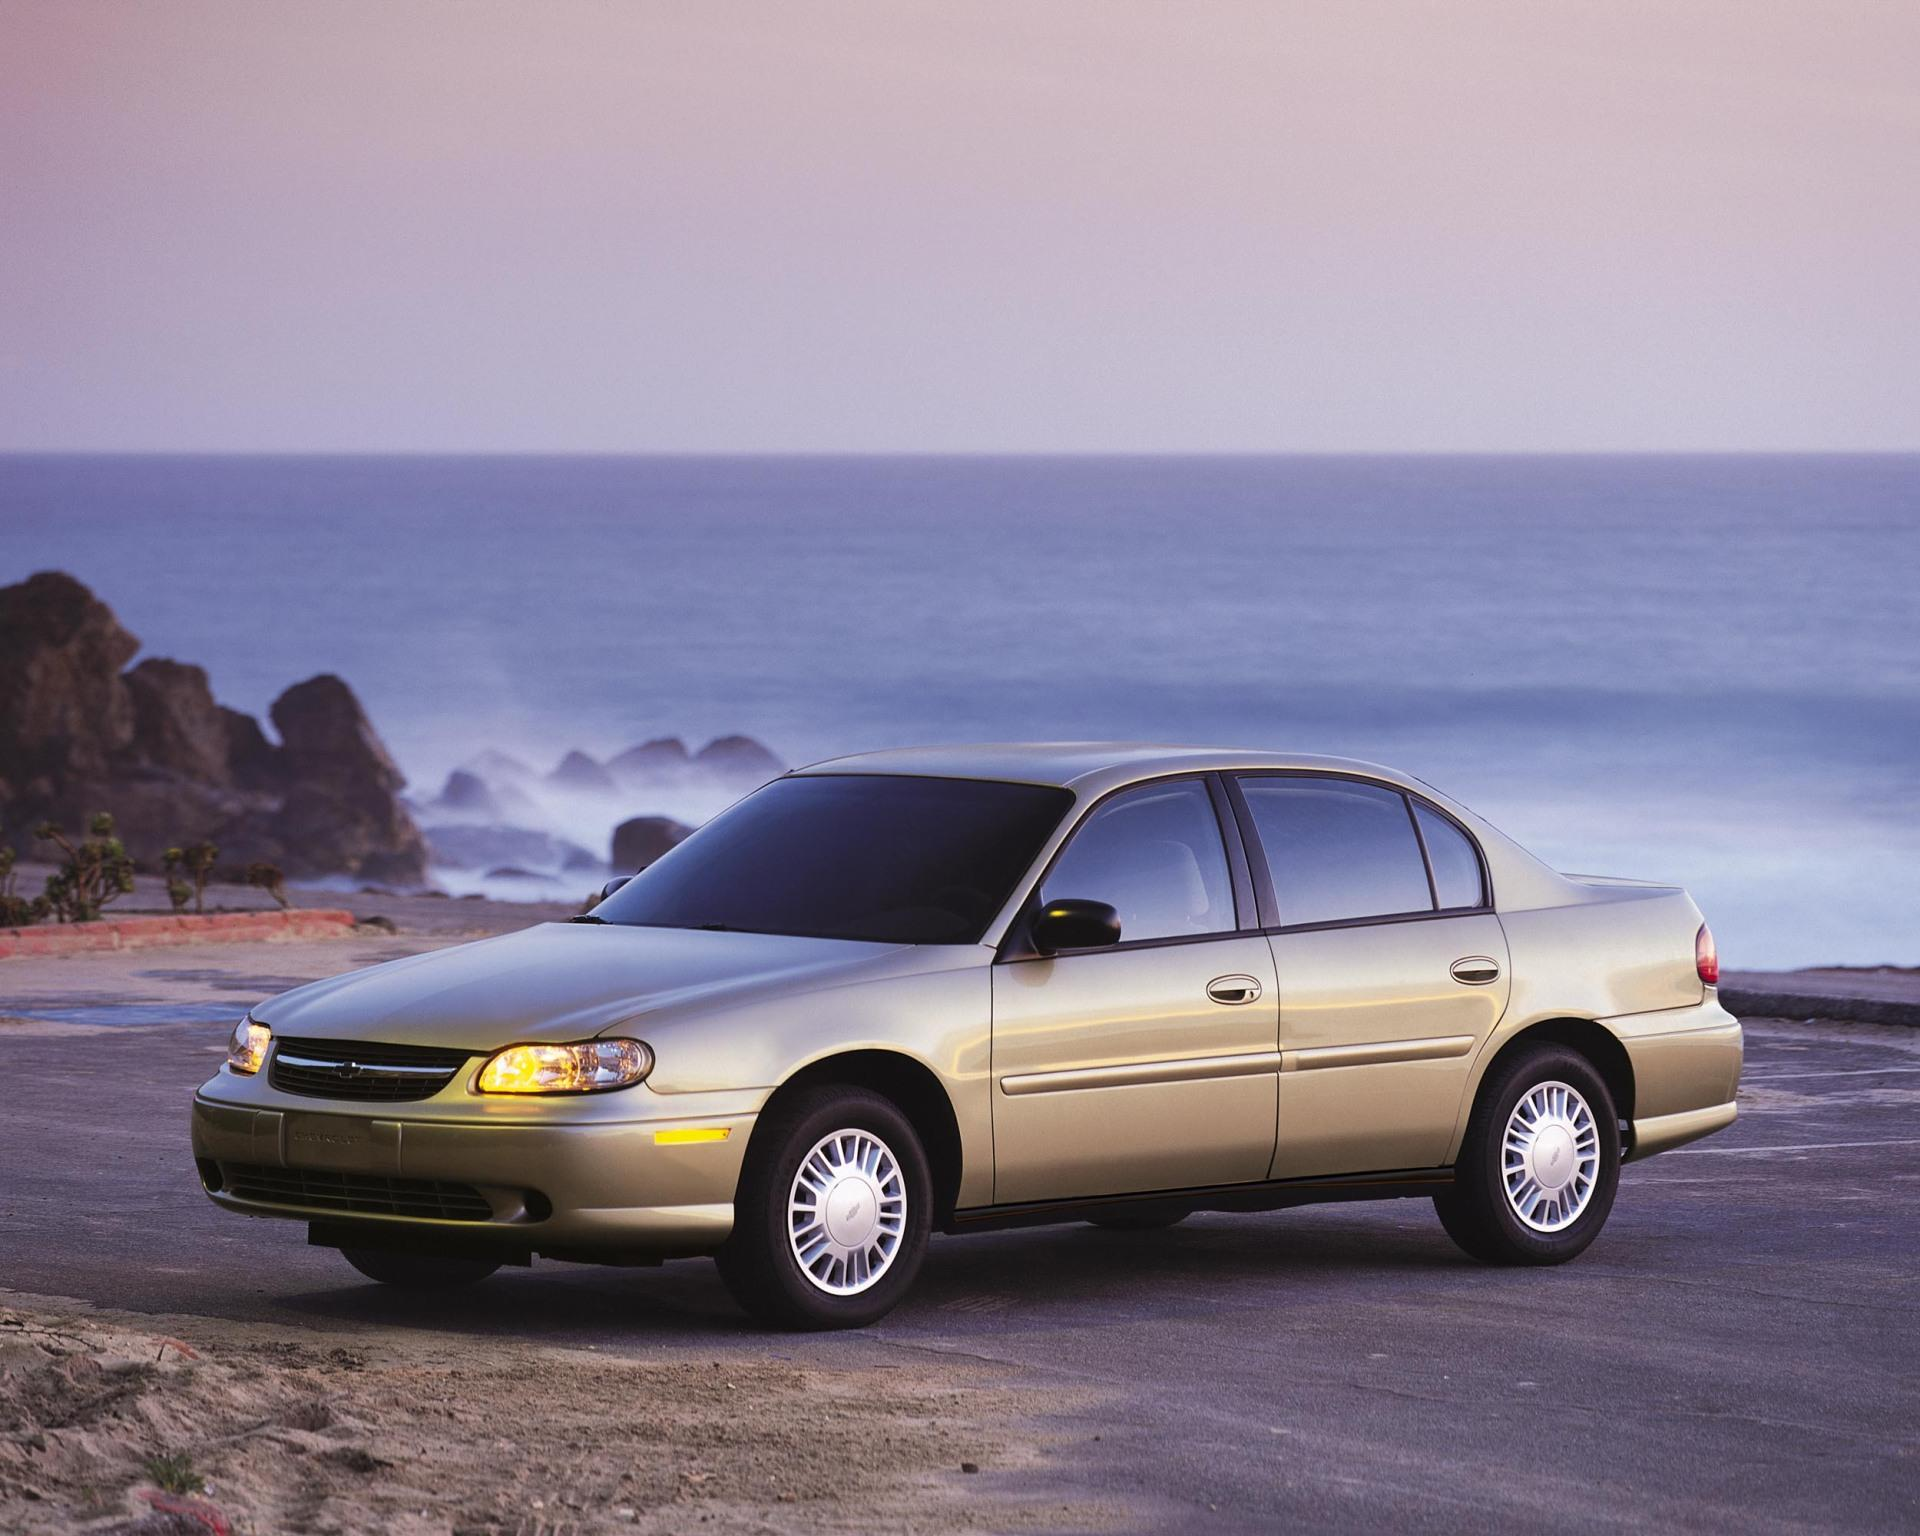 2001 chevrolet malibu pictures history value research news conceptcarz com